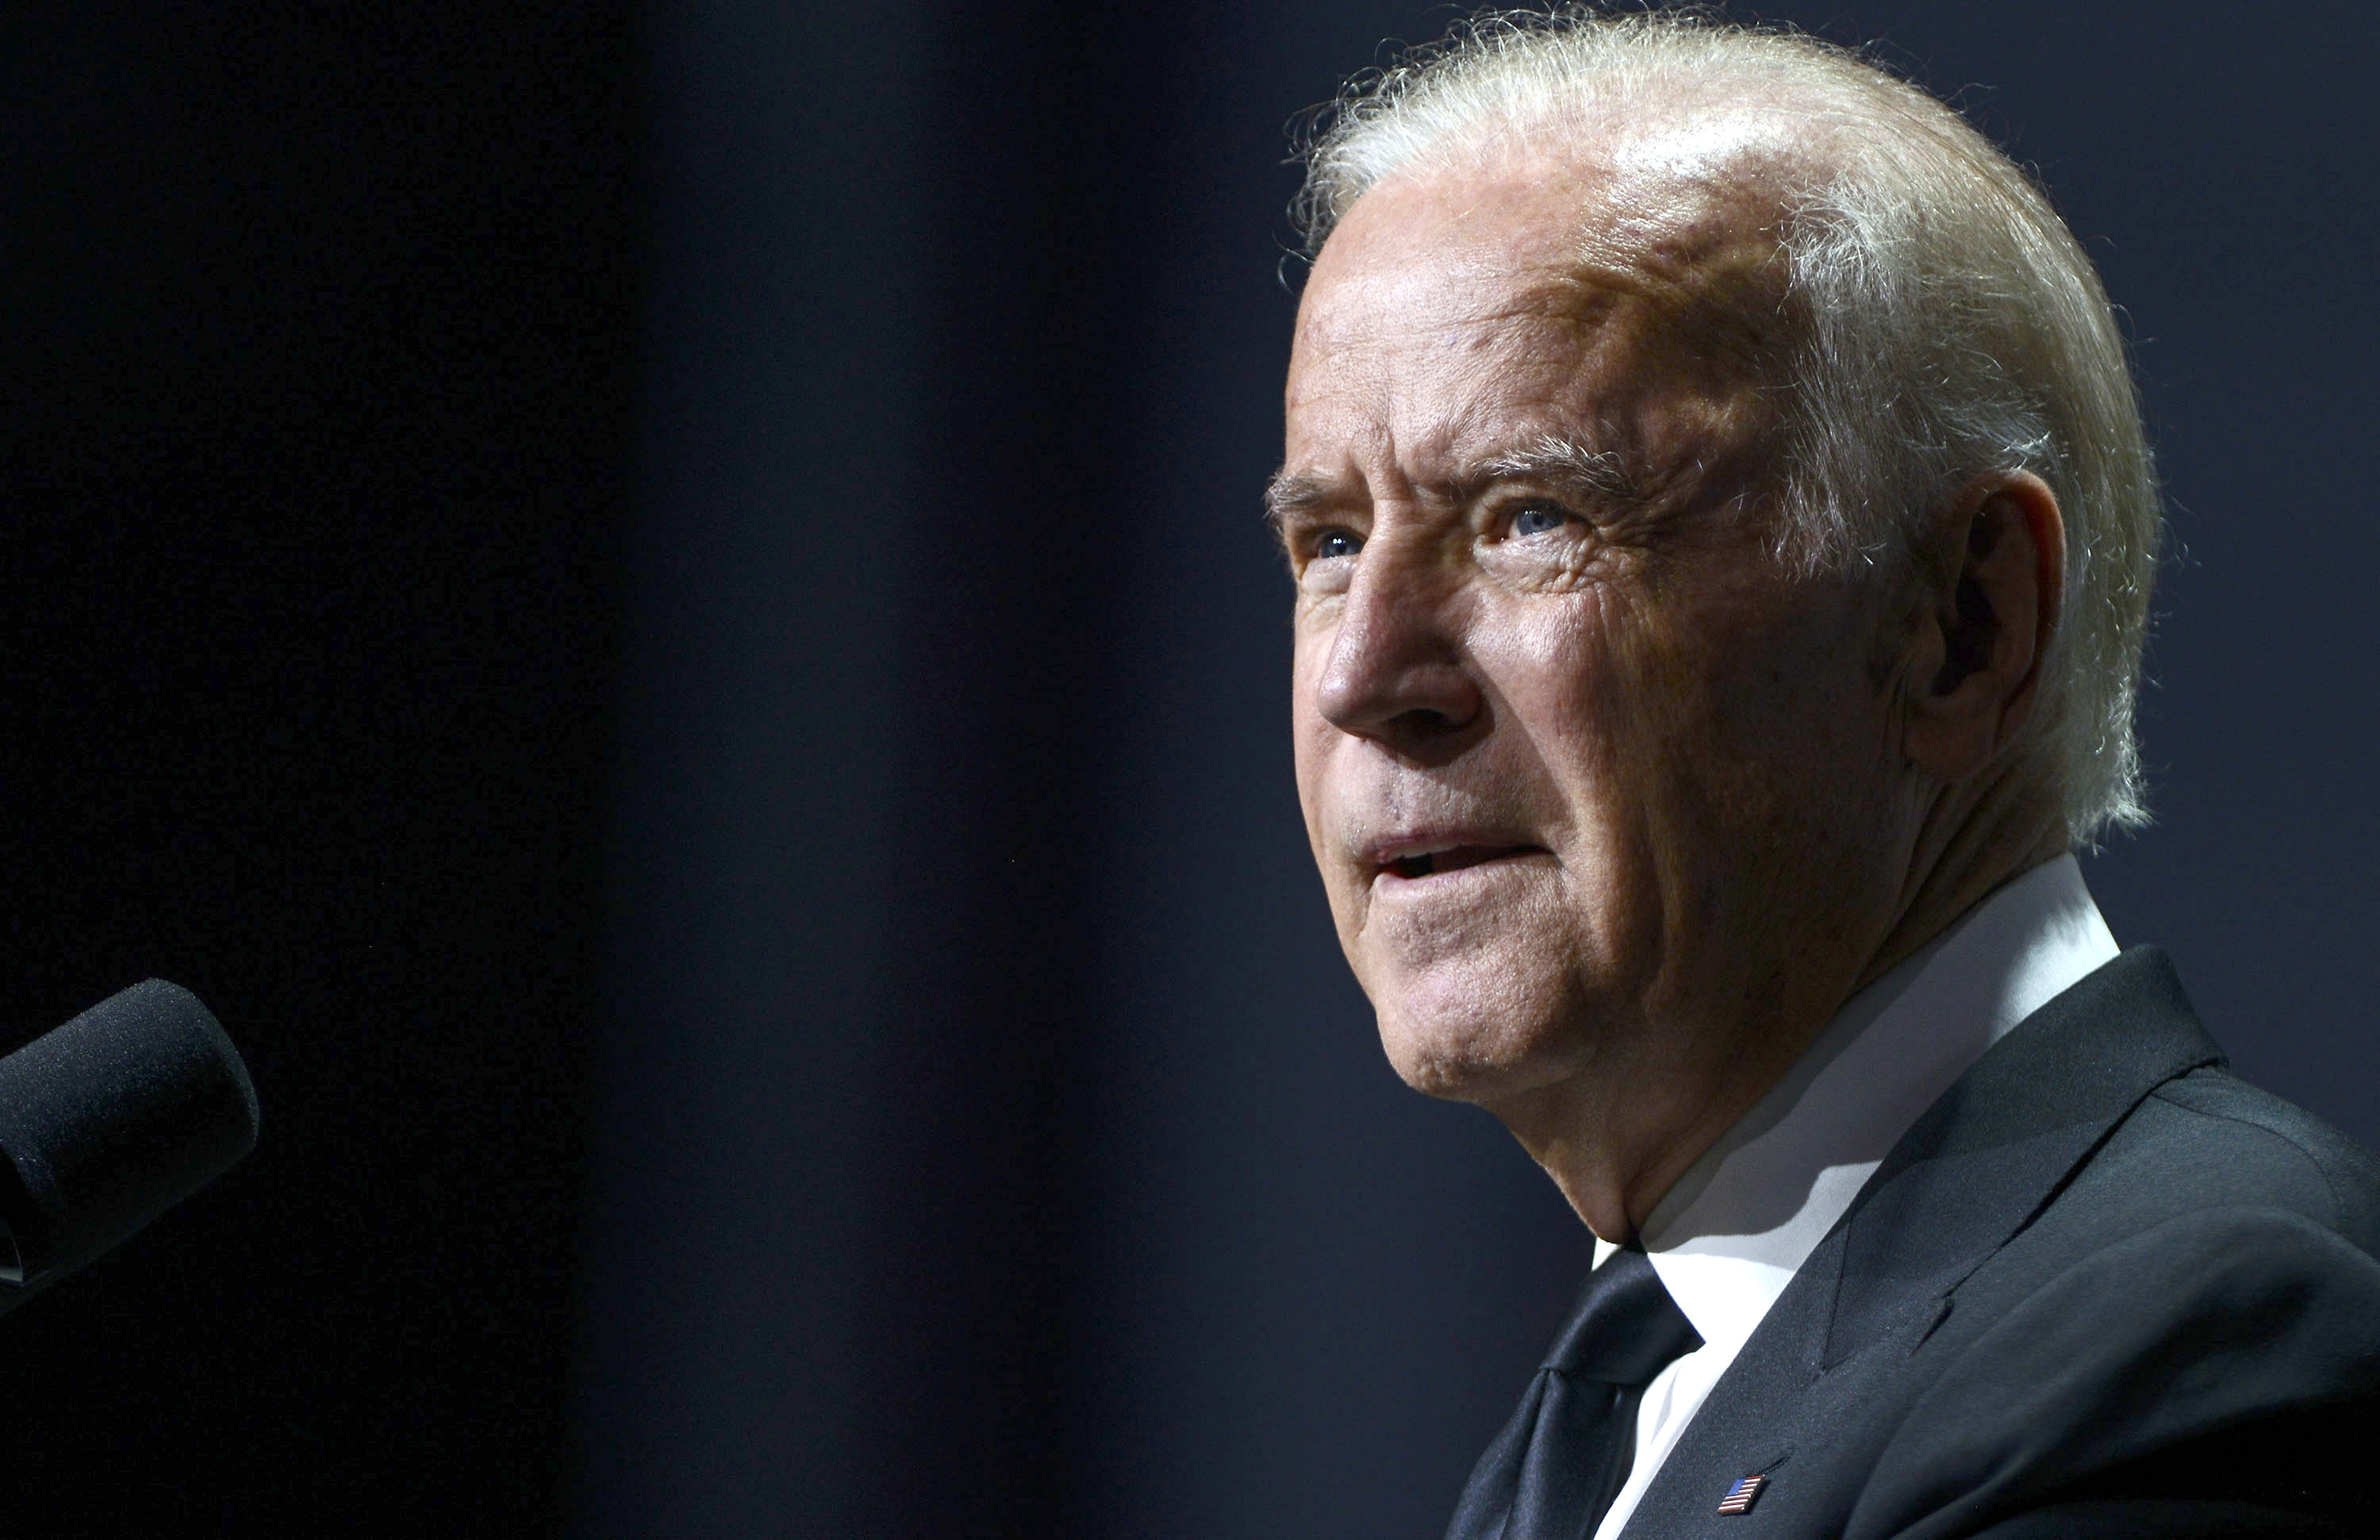 Vice President Joe Biden speaks during the 19th Annual HRC National Dinner at Walter E. Washington Convention Center on October 3, 2015 in Washington, DC.